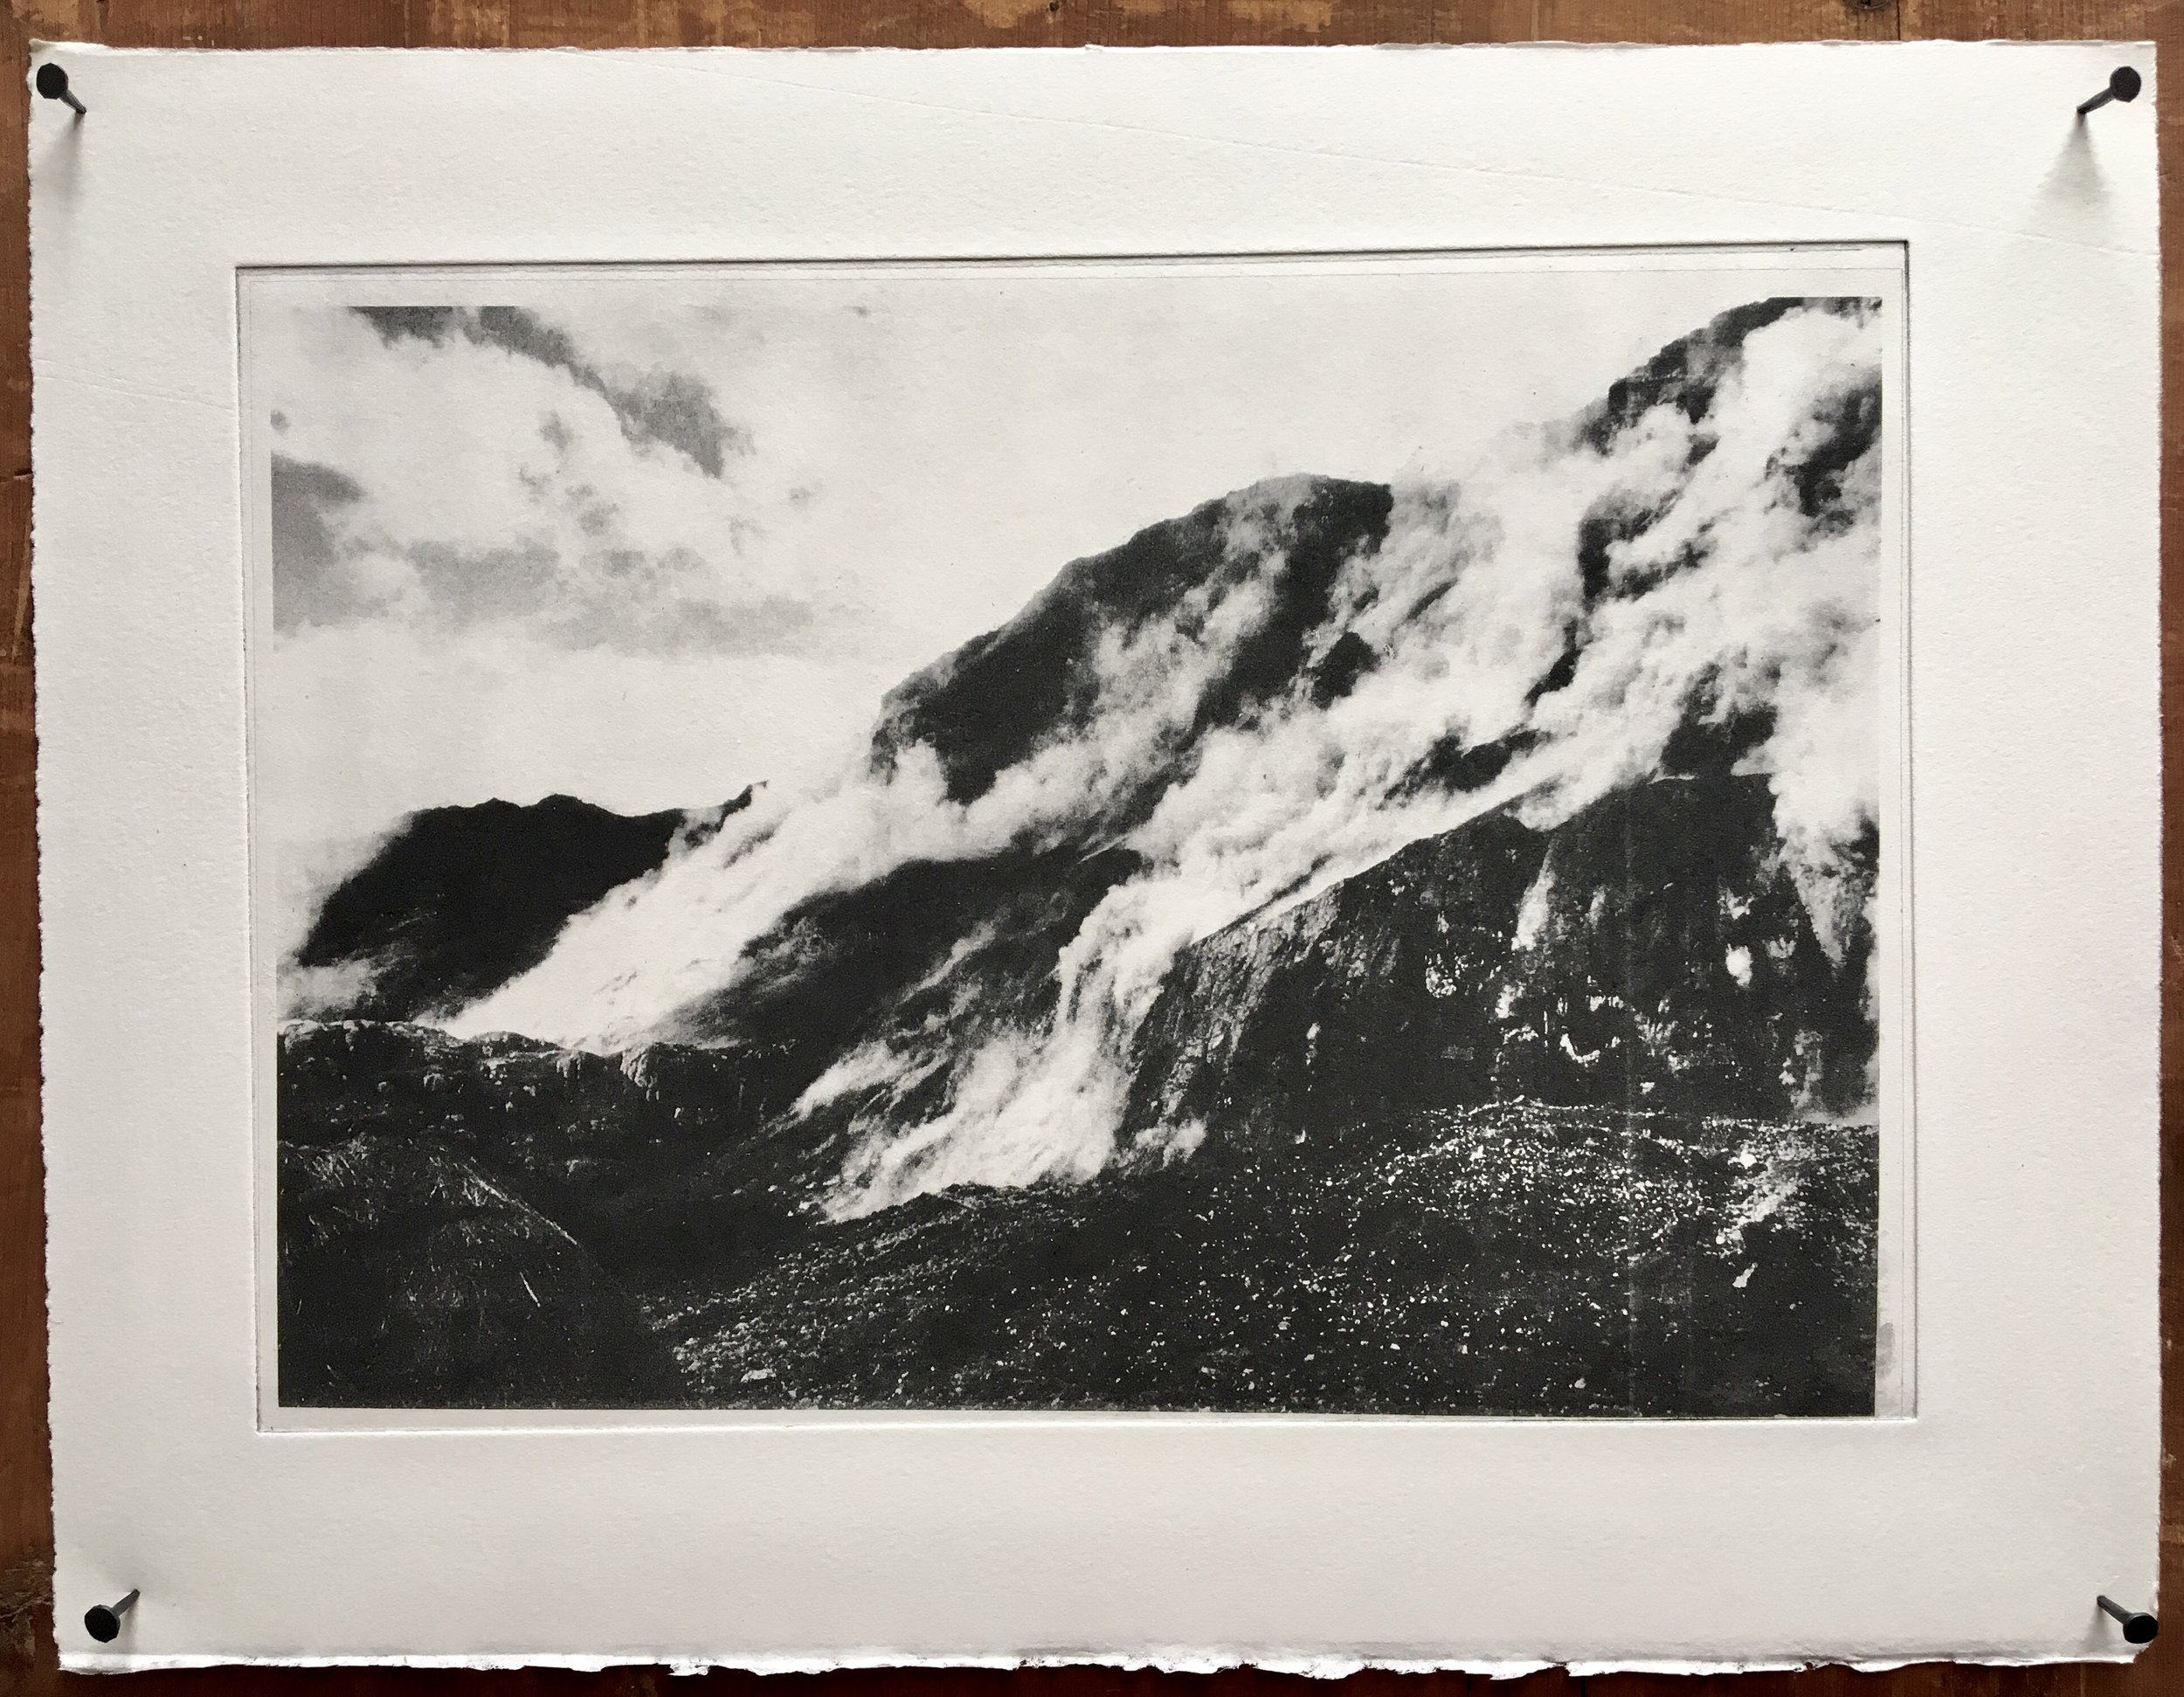 photographic etching, archival image by John Glasgow (NZ) of earthquake in Peru circa 1969. Printed 2015